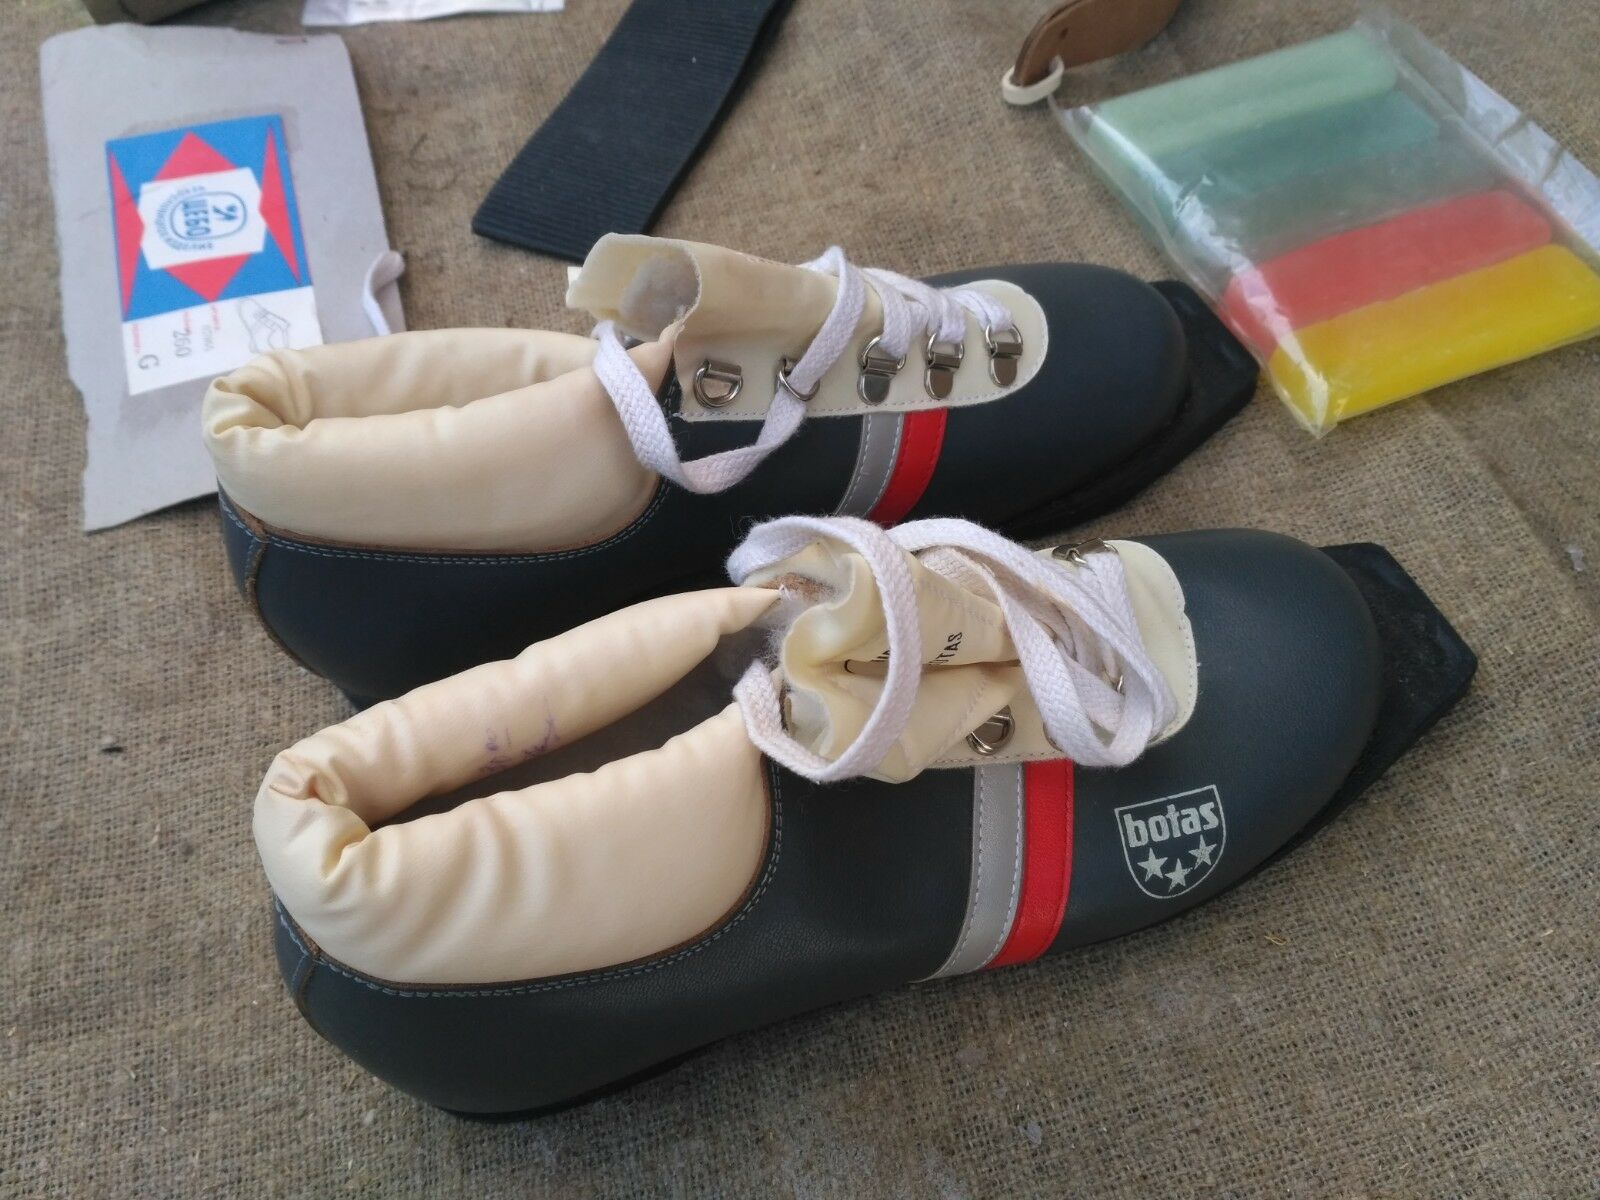 Vintage Ski boots shoes Sports Warm Winter & Accessories